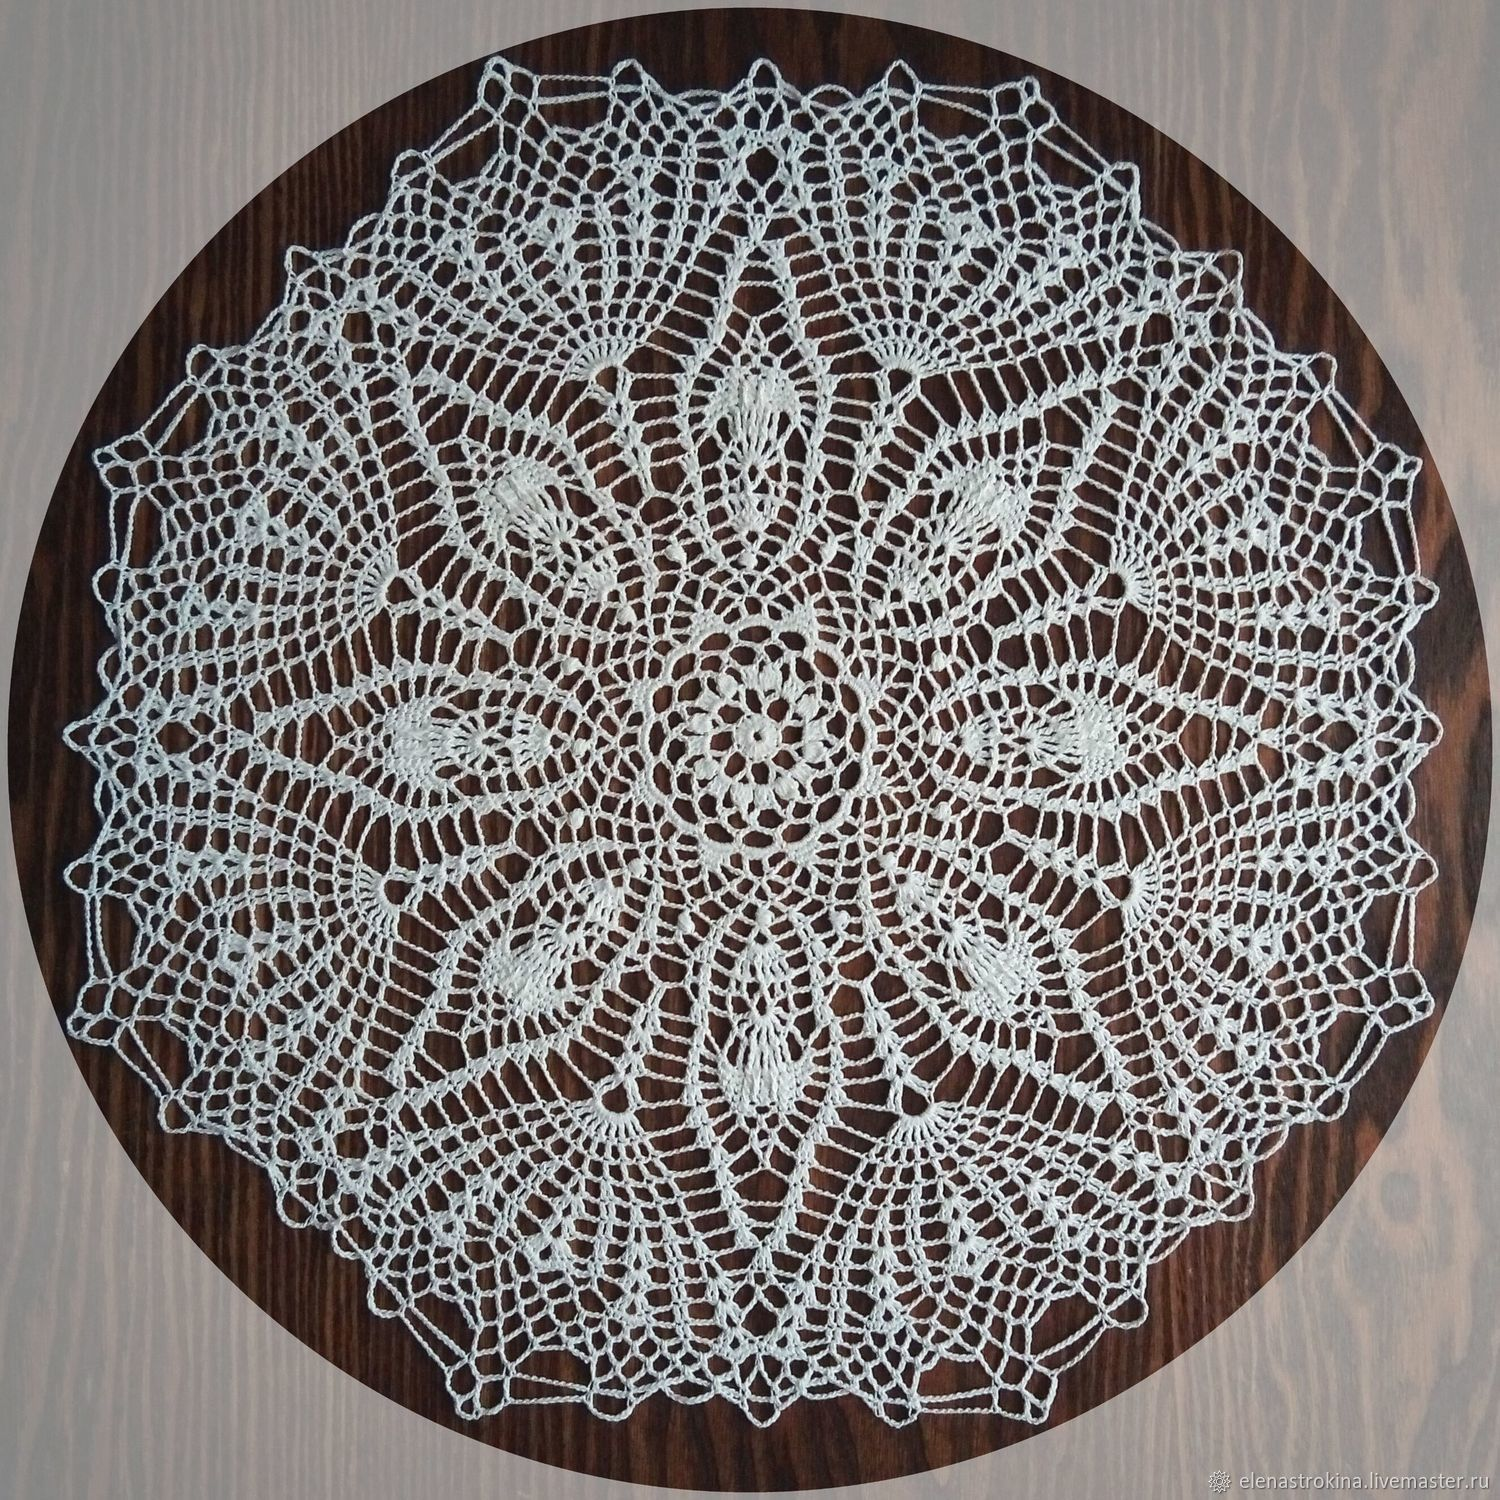 Doily Crochet The Shining Shop Online On Livemaster With